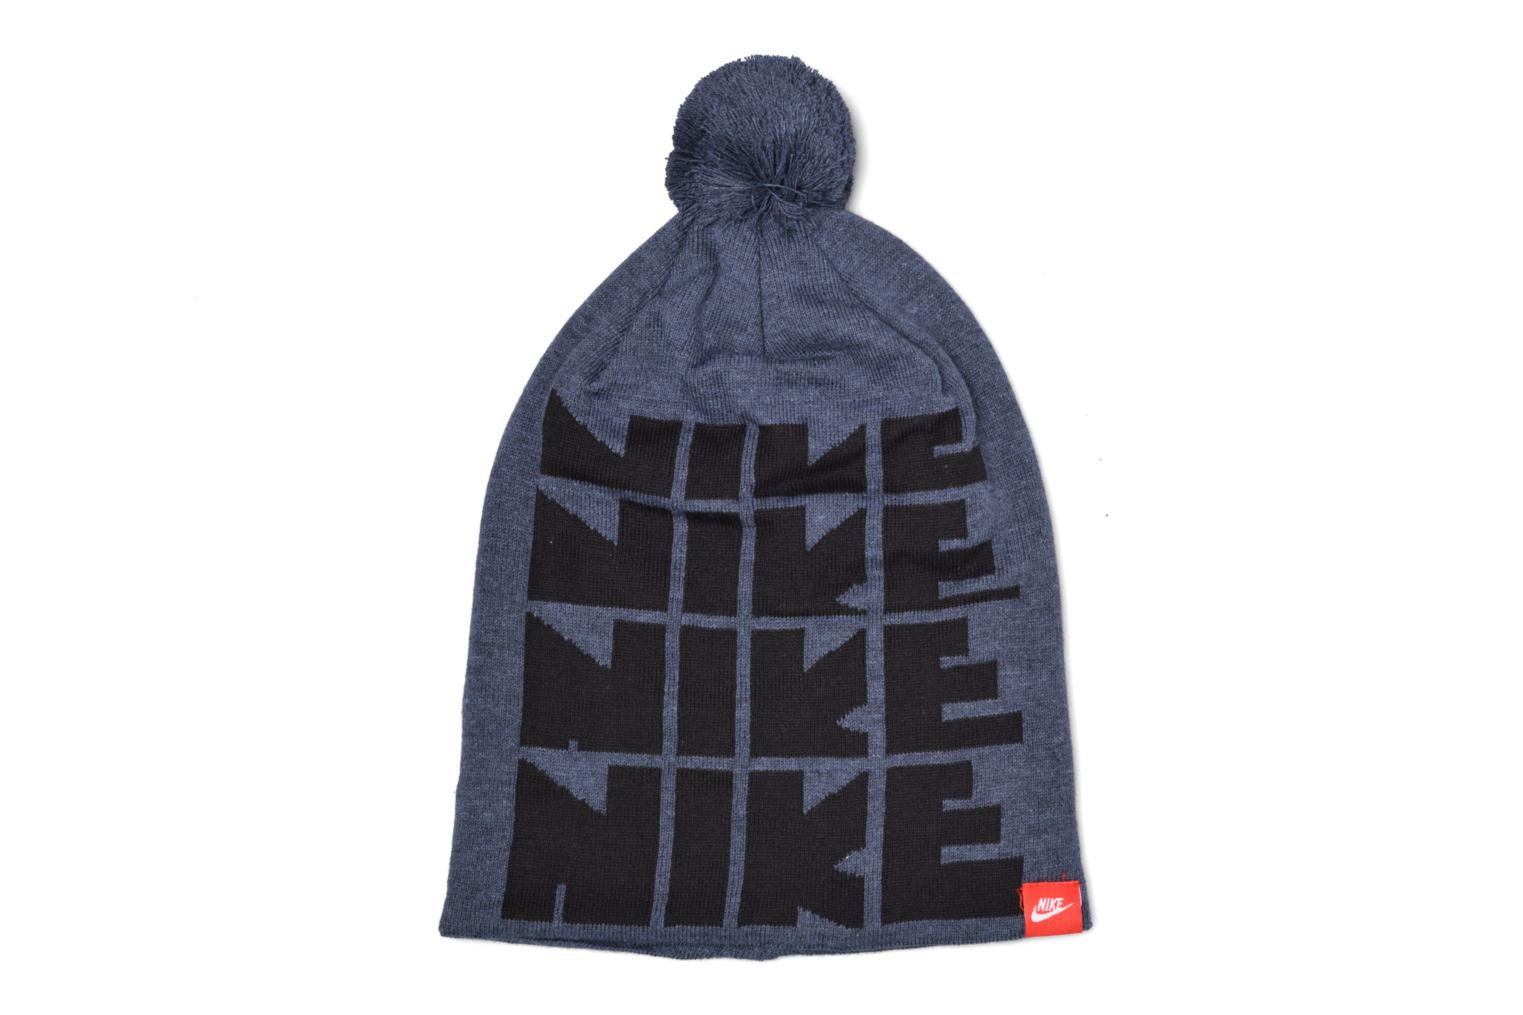 Futura DNA Beanie-Red Bonnet Obsidian heather